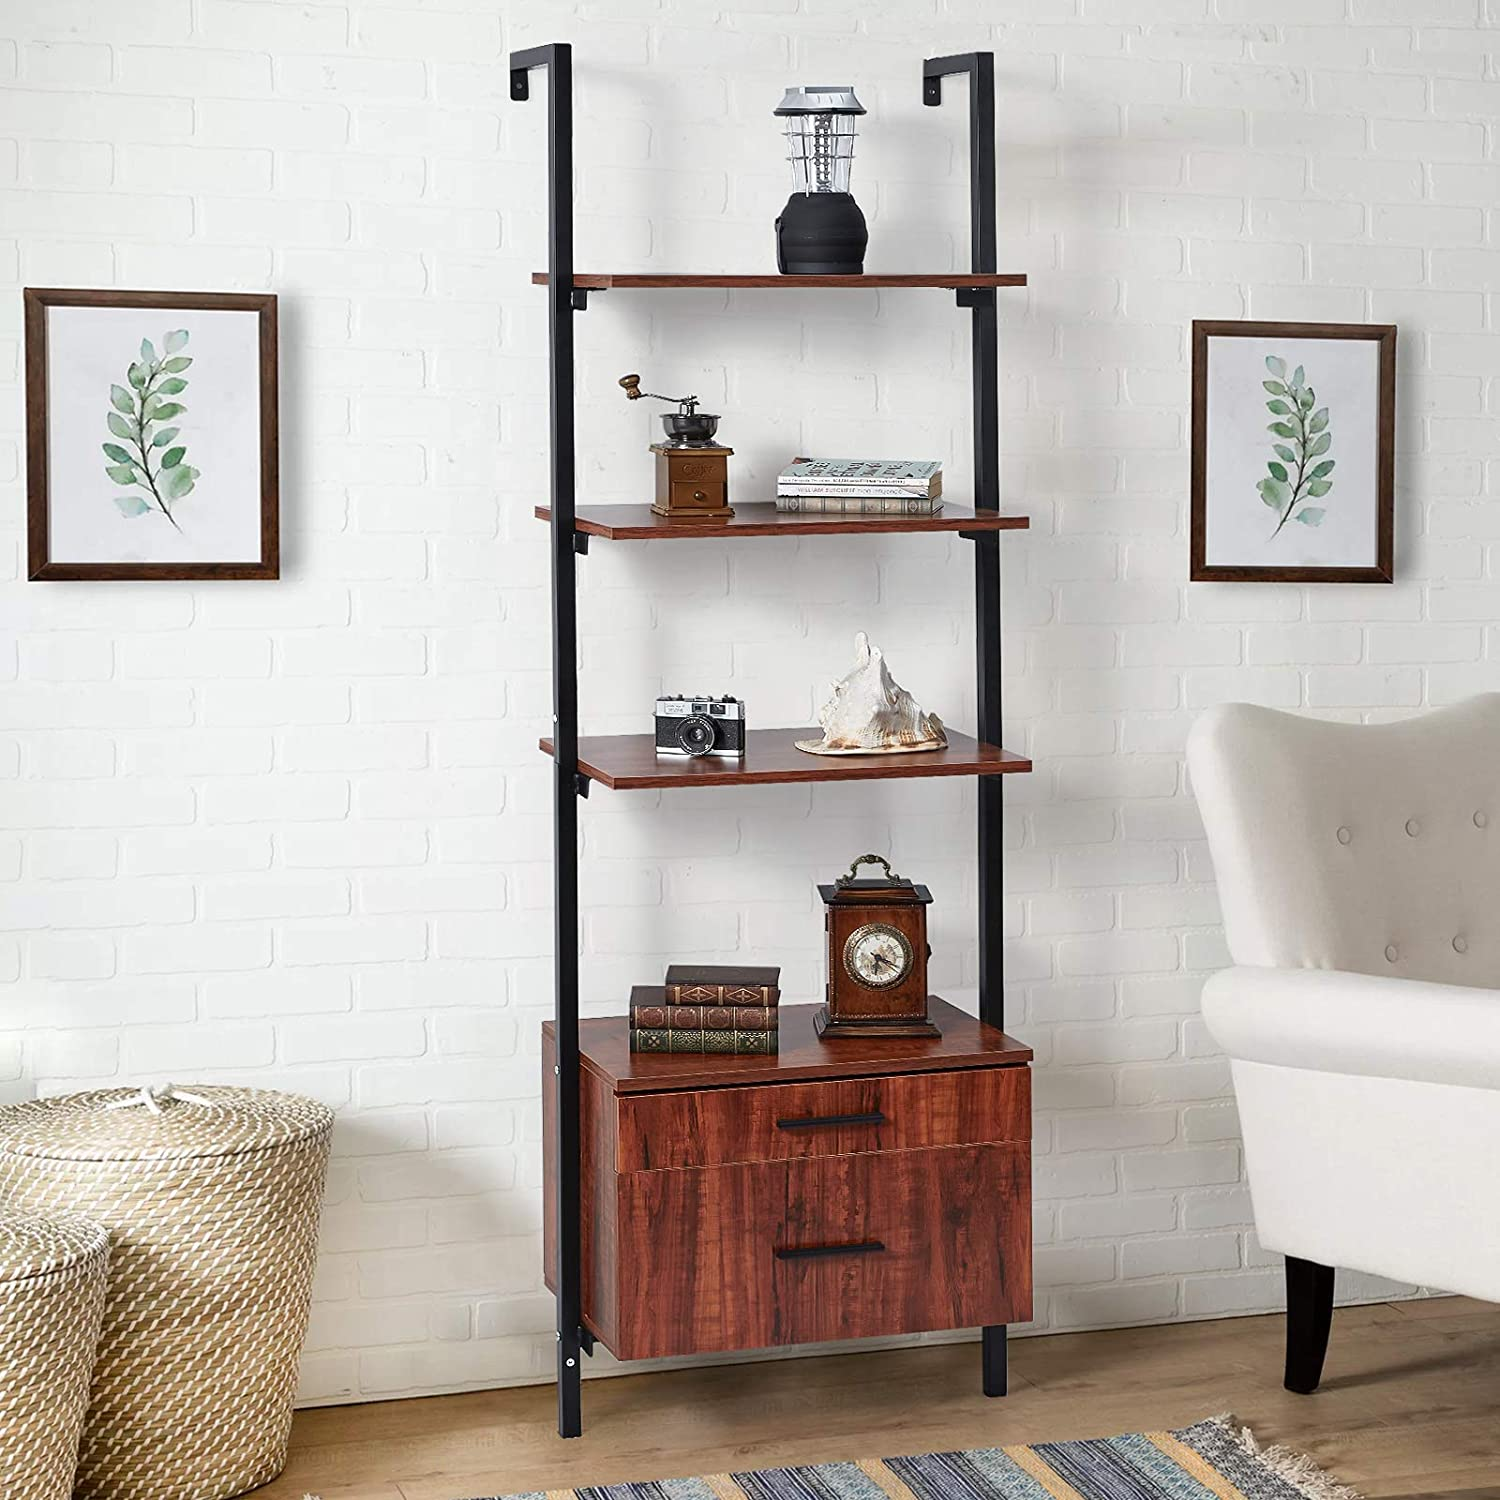 """YODOLLA 3-Tier Wall-Mounted Bookcase with 2 Wood Drawers, Industrial Wood Ladder Shelf w/Matte Metal Frame, 73"""" Storage Rack for Living Room, Bedroom, Study, Home, Office, Black"""